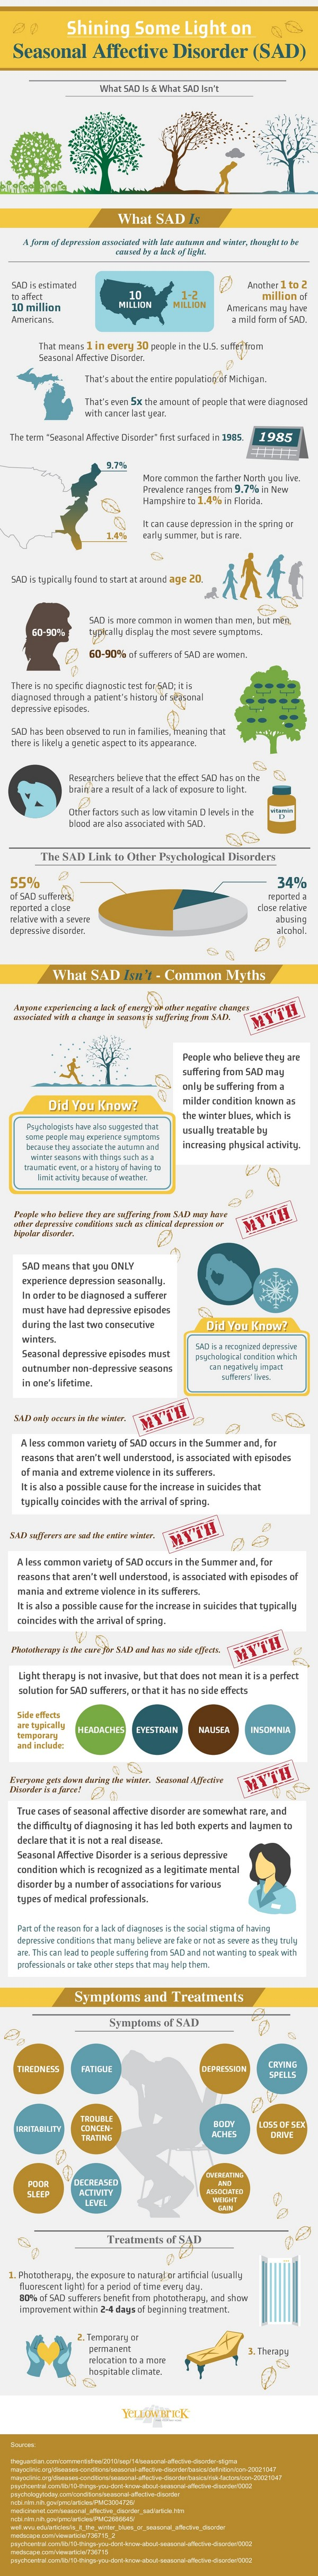 Seasonal_Affective_Disoder_Infographic_1